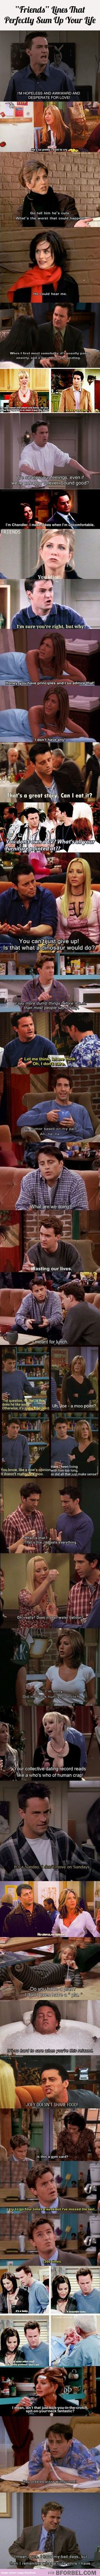 15 Trendy Ideas Funny Friends Humor Hilarious Tv Shows Friends Tv Show, Friends 1994, Tv: Friends, Friends Moments, Friends Forever, Funny Friends, Friends Episodes, Tv Quotes, Funny Quotes